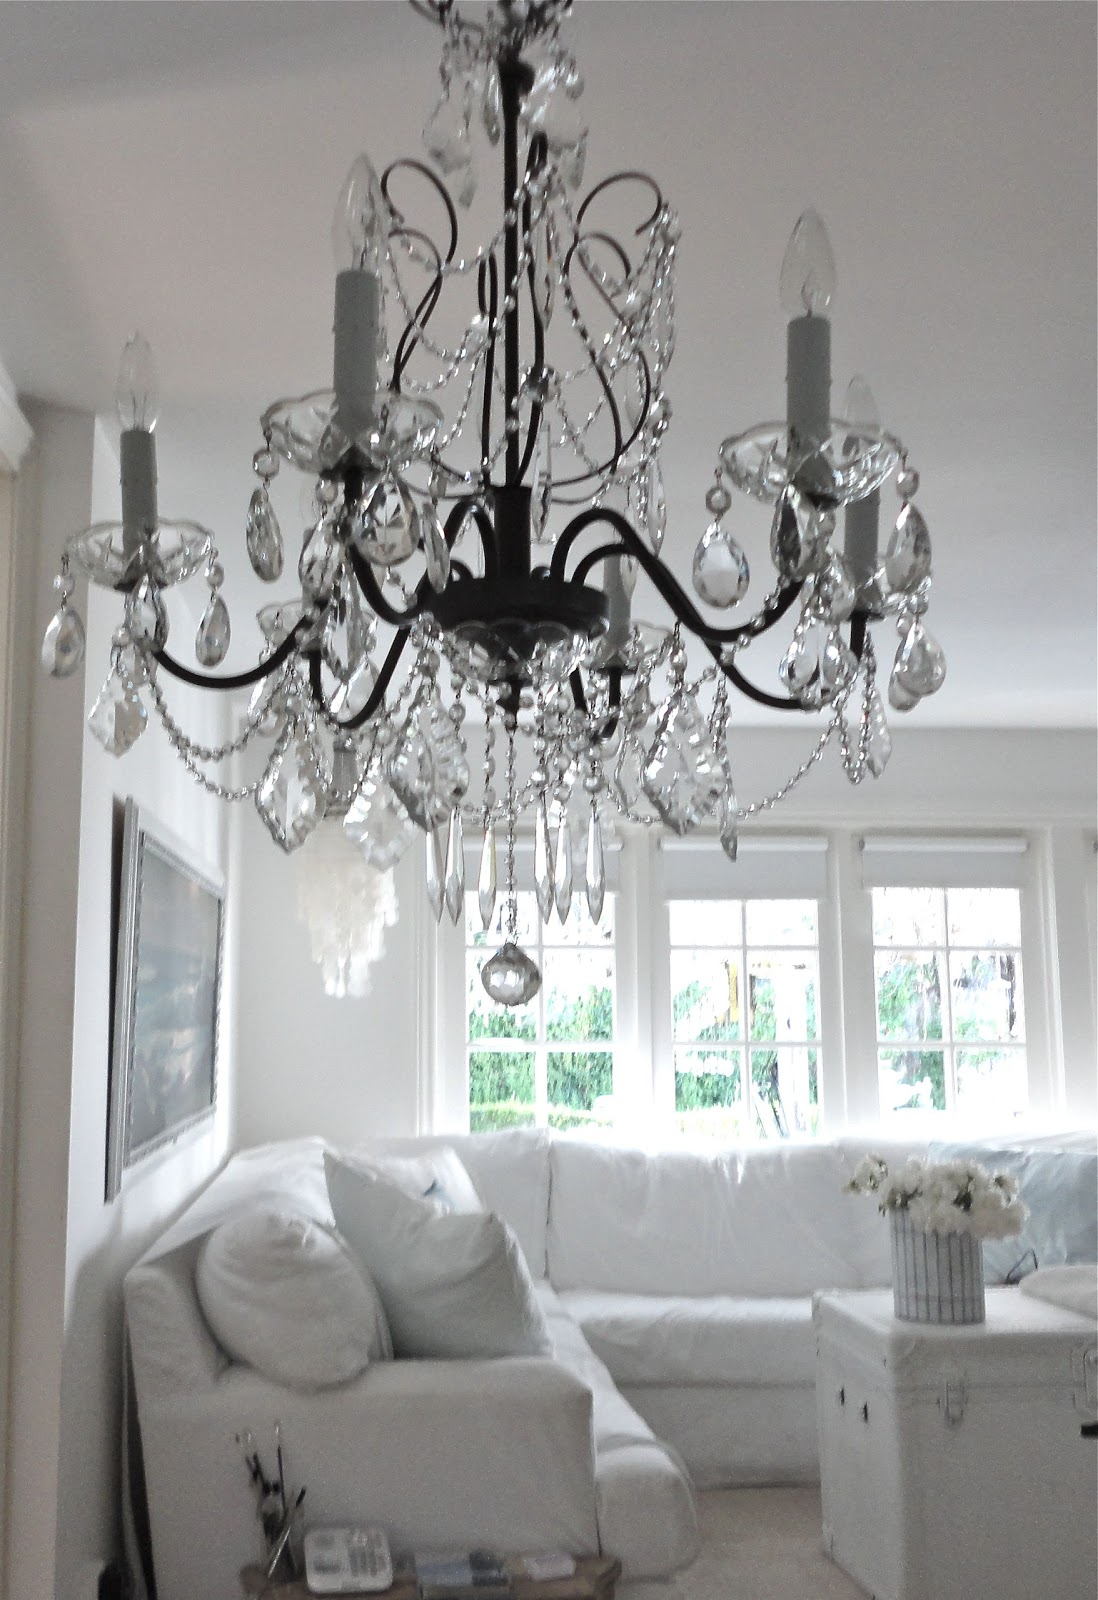 Chandeliers Sunday Dinner Table